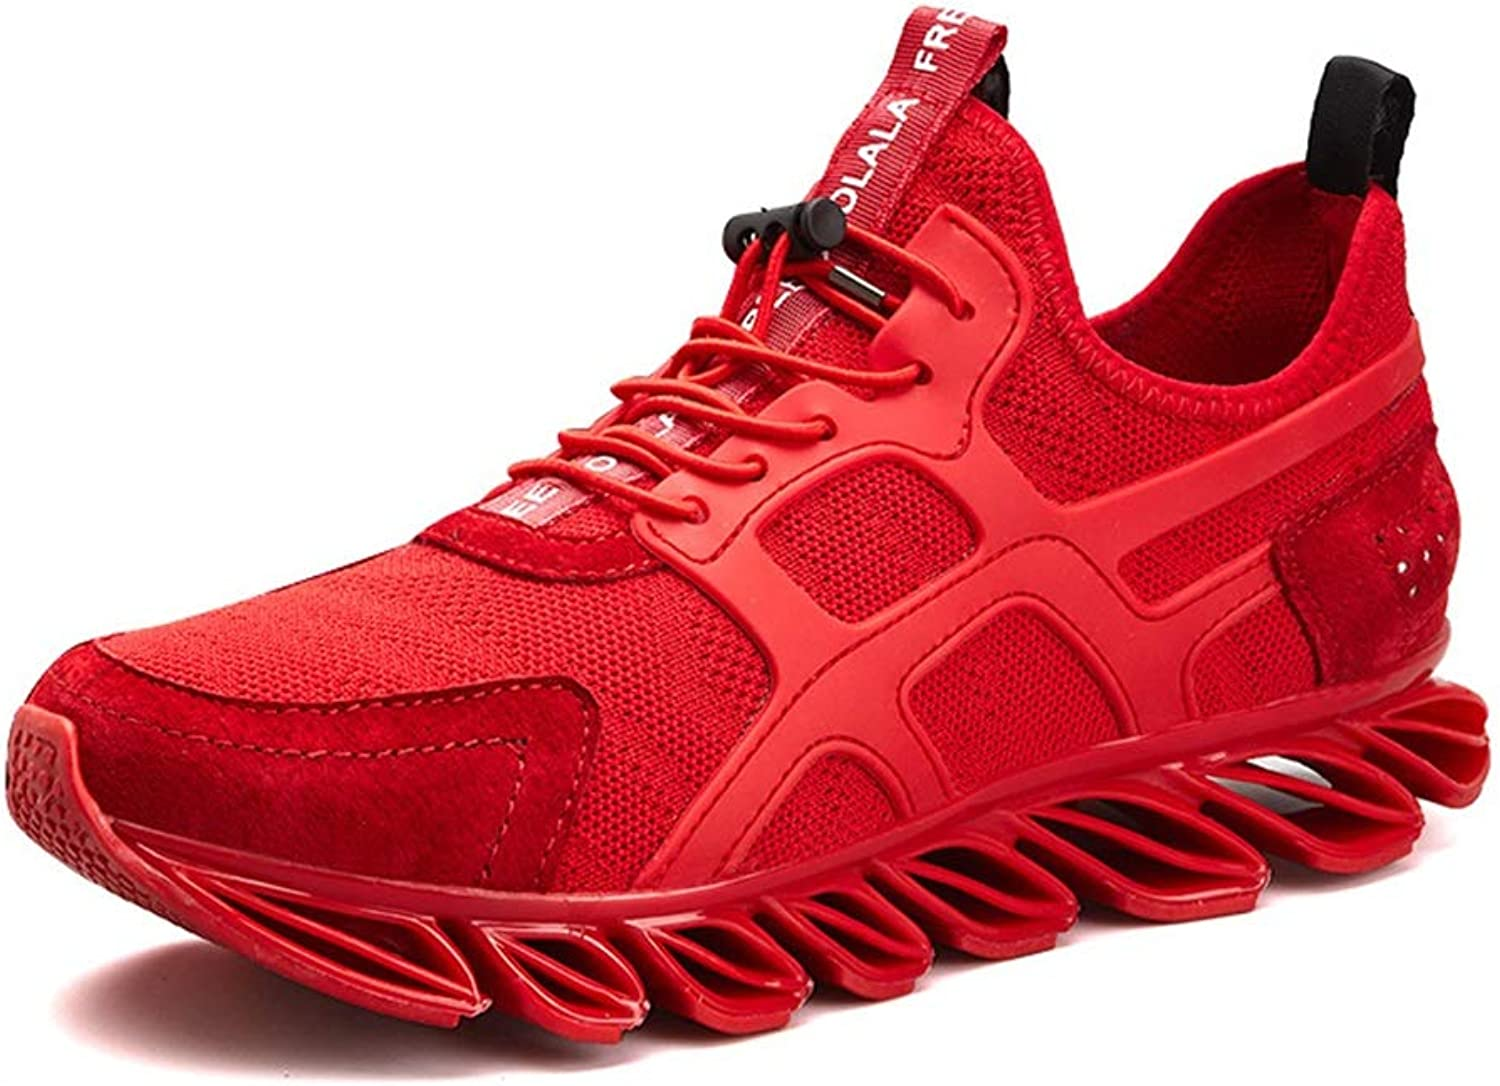 Men's shoes, Spring Fall Sports shoes Comfort Warrior Shock Absorber Breathable Running shoes Personality Lace-up Athletic shoes Walking shoes